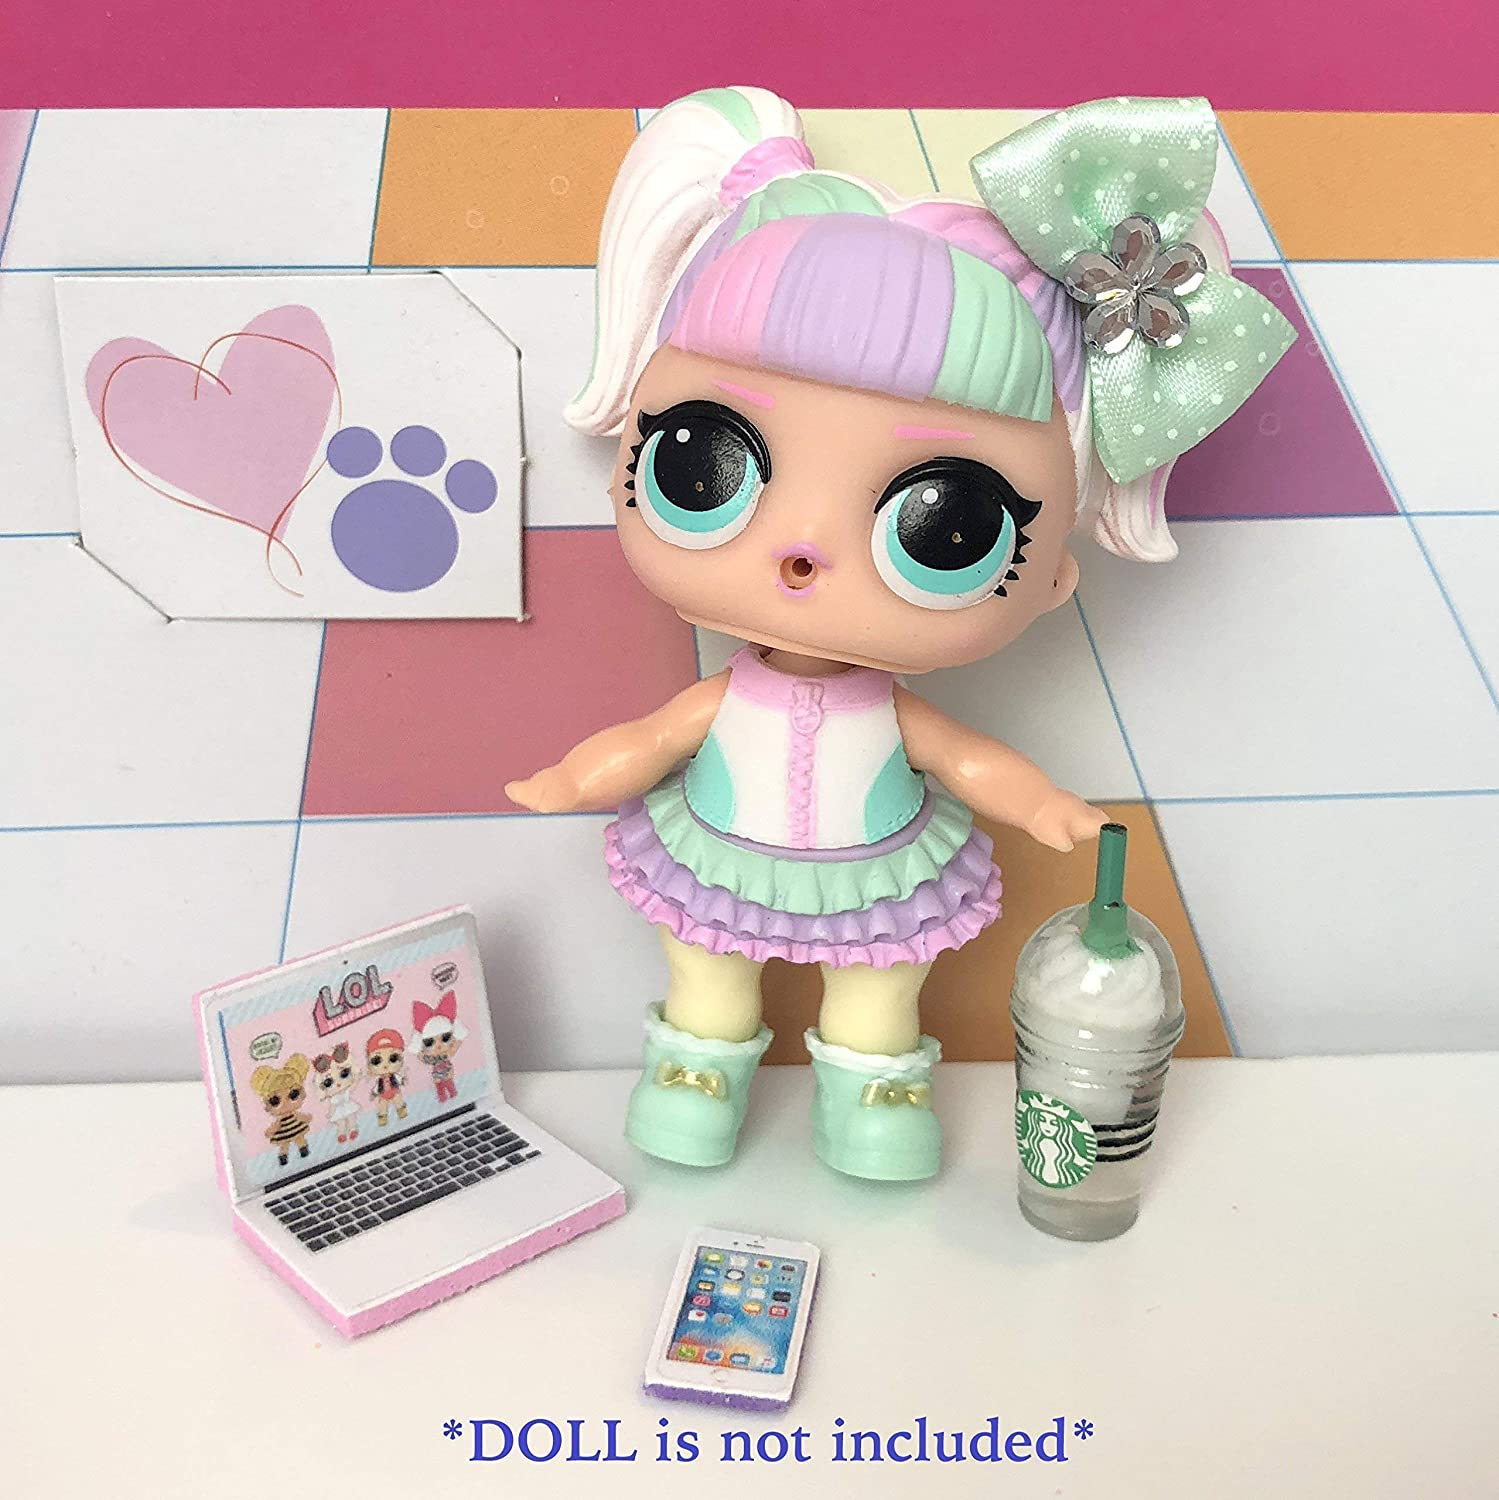 LOL Accessories 4PC Lot Starbucks Laptop Phone Bow DOLL NOT INCLUDED …